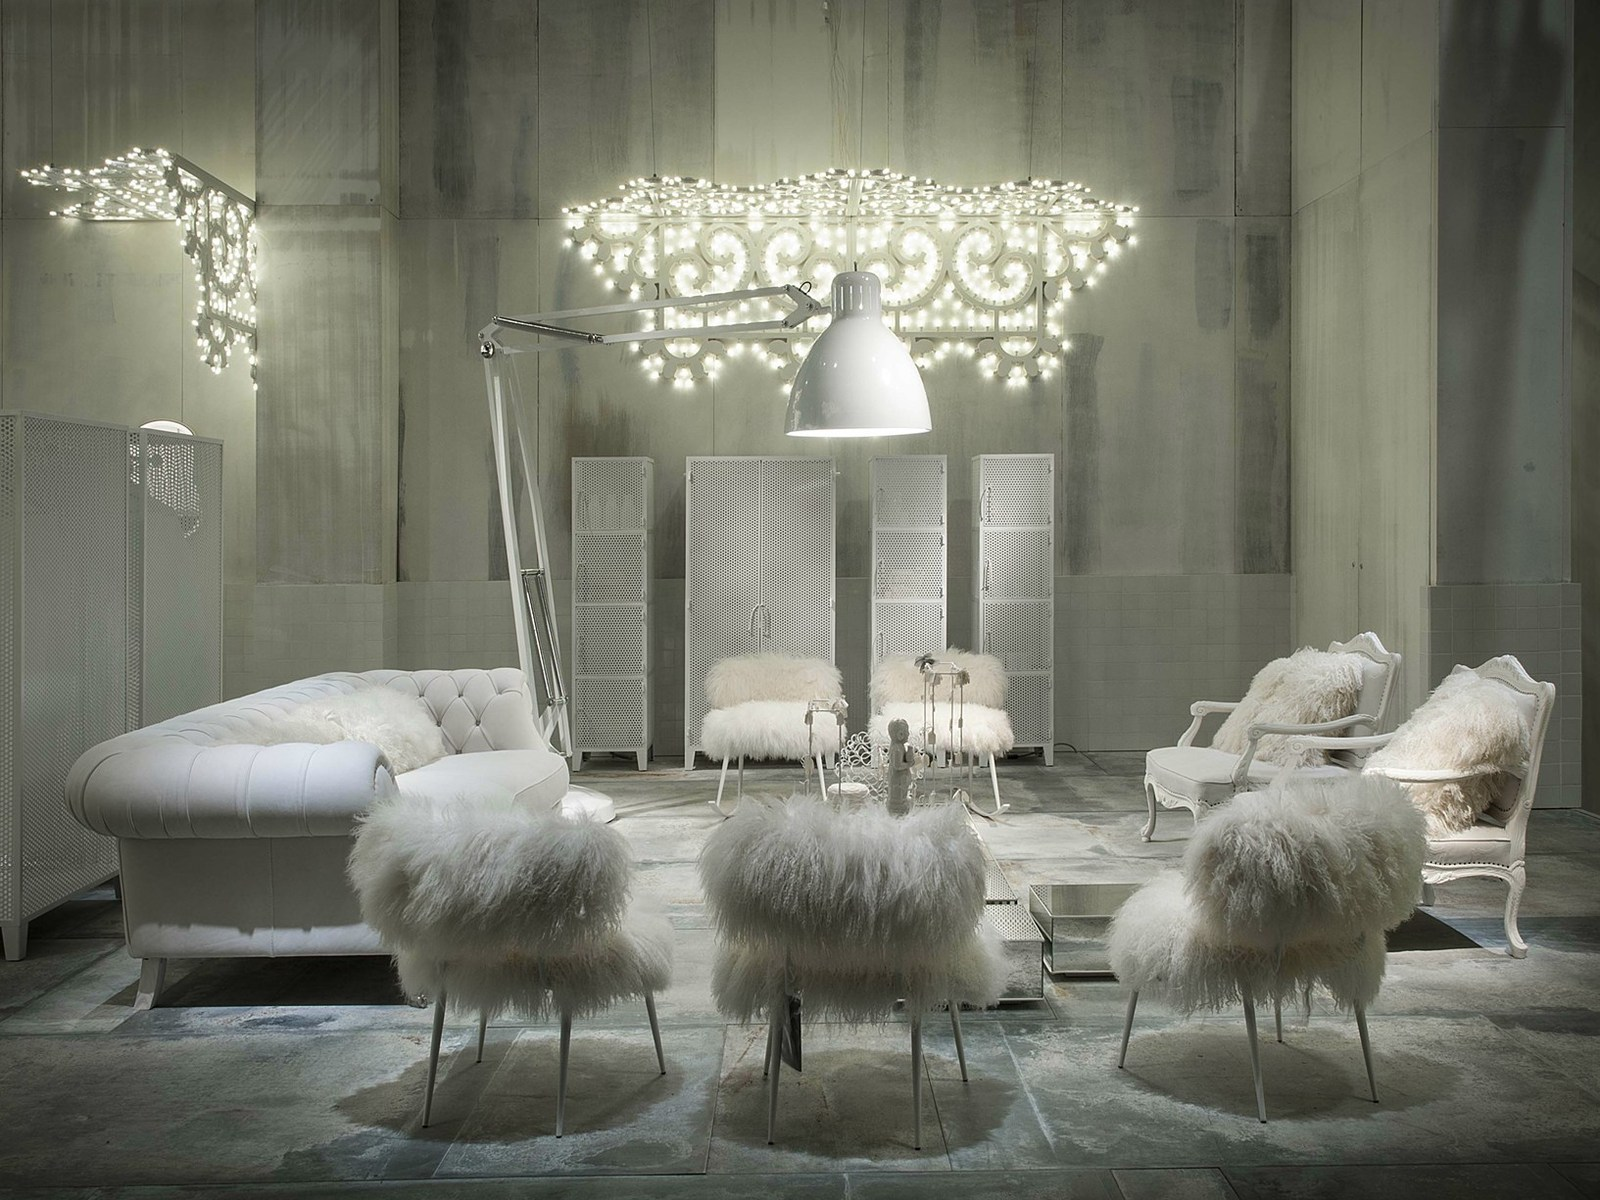 Paola Navone Designs White Fairy Tale Like Interiors To